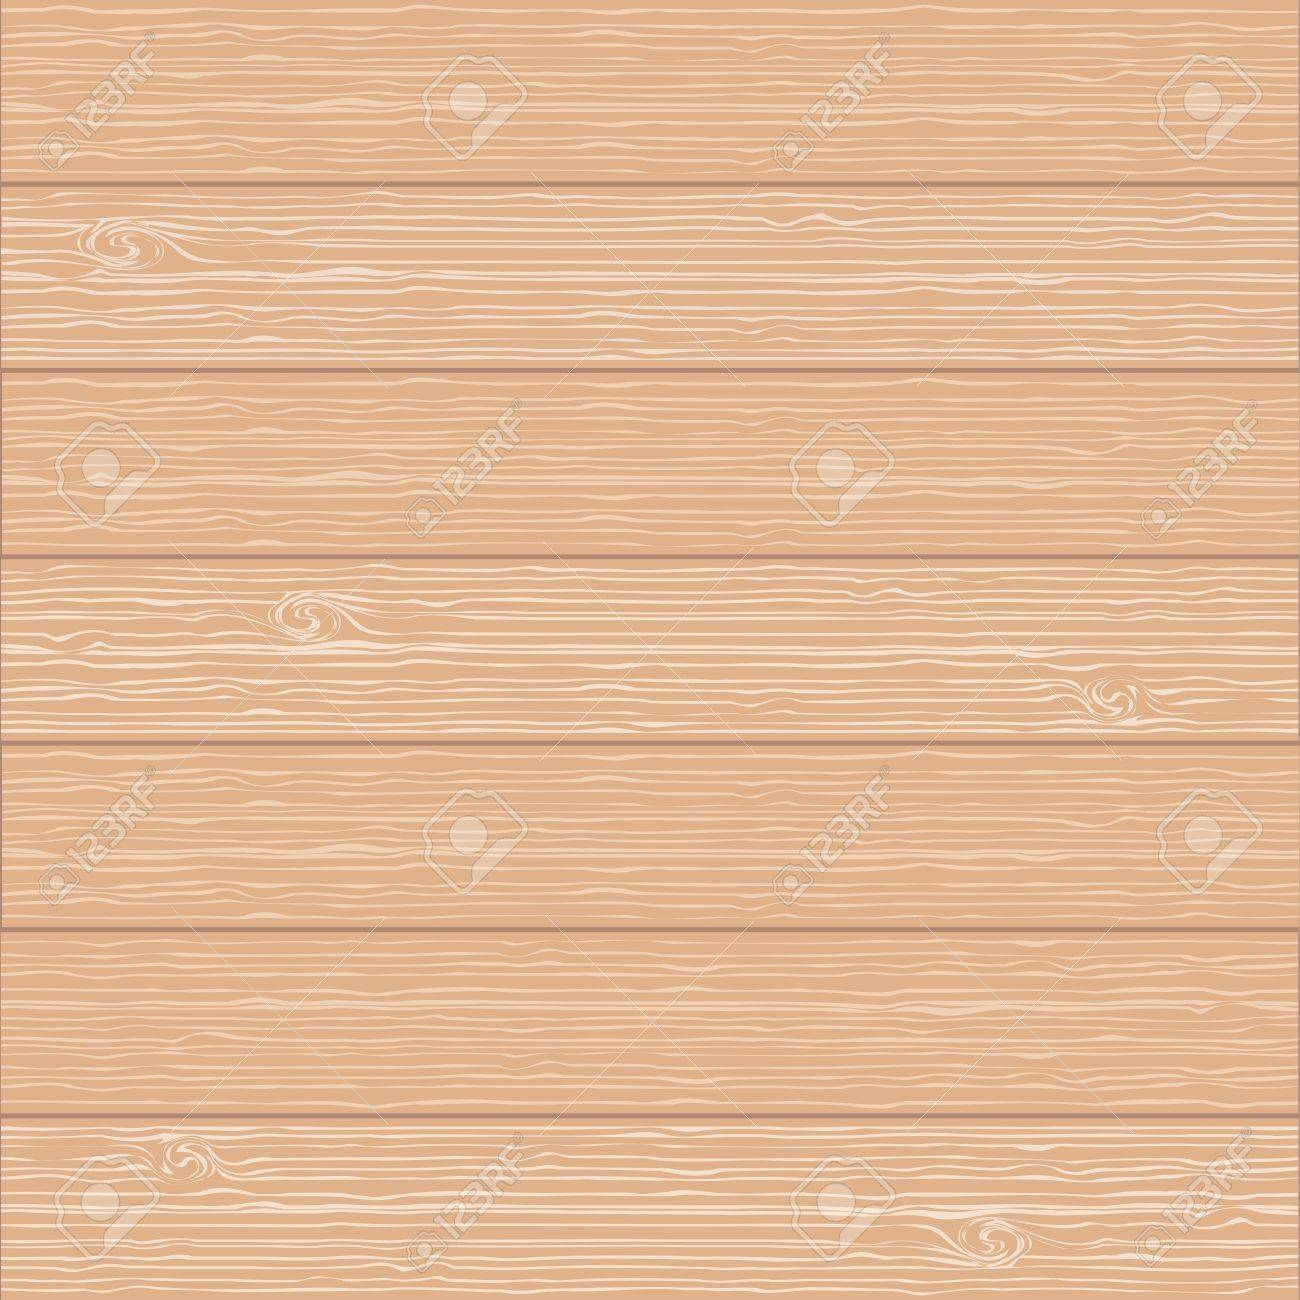 Realistic wood texture background light brown color royalty free realistic wood texture background light brown color stock vector 13610601 urmus Image collections